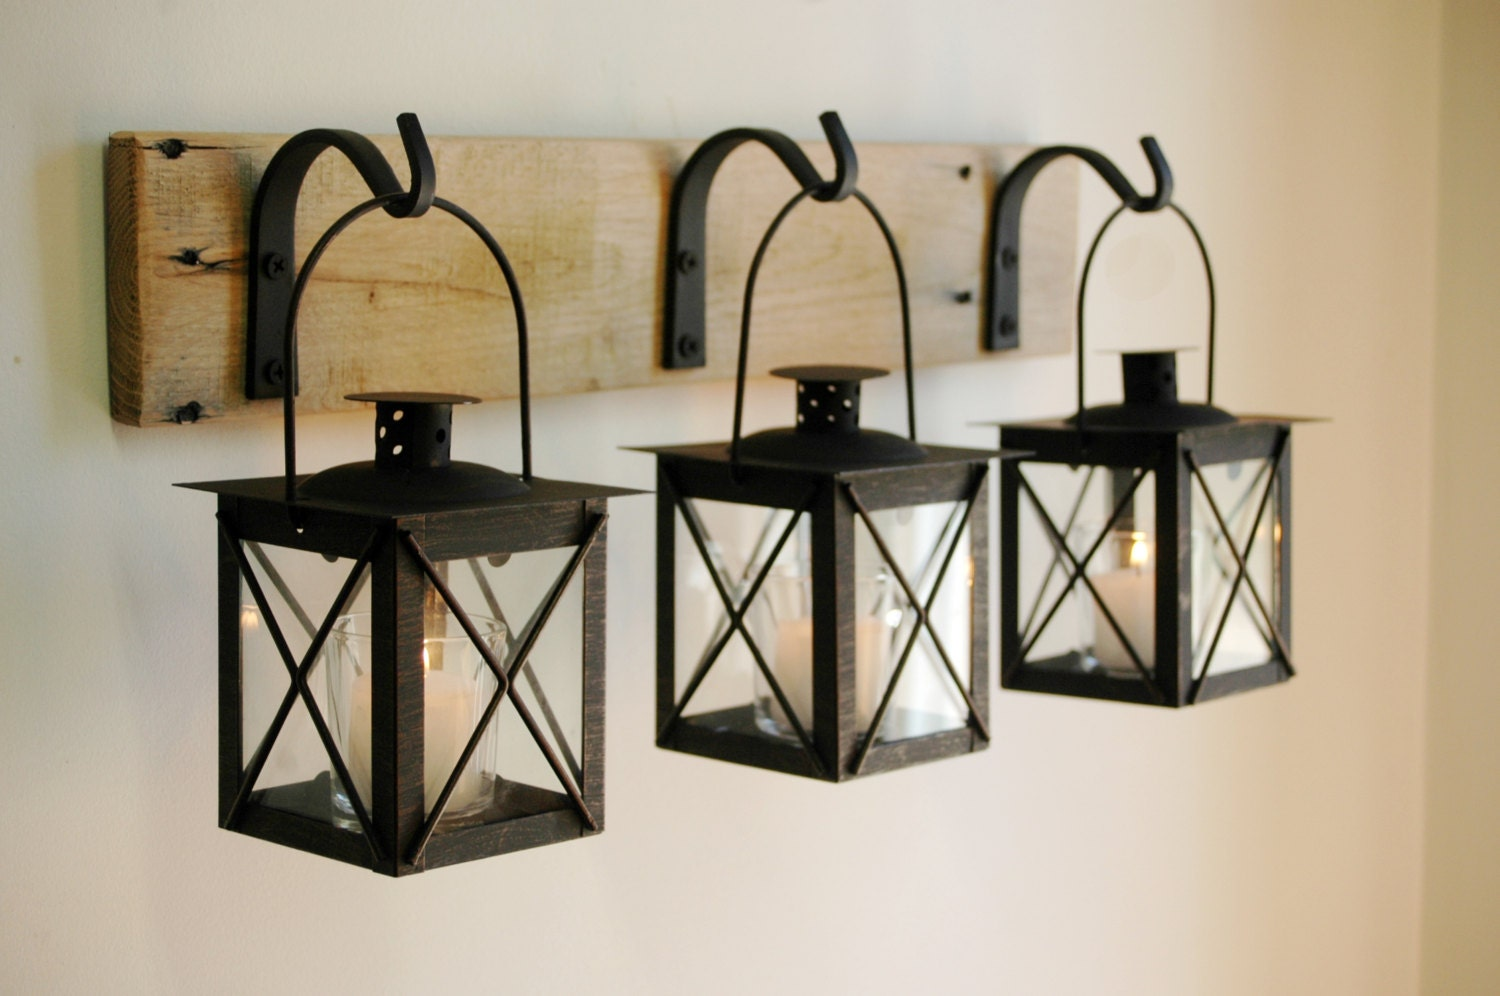 Black lantern trio wall decor home decor rustic decor for Wooden art home decorations